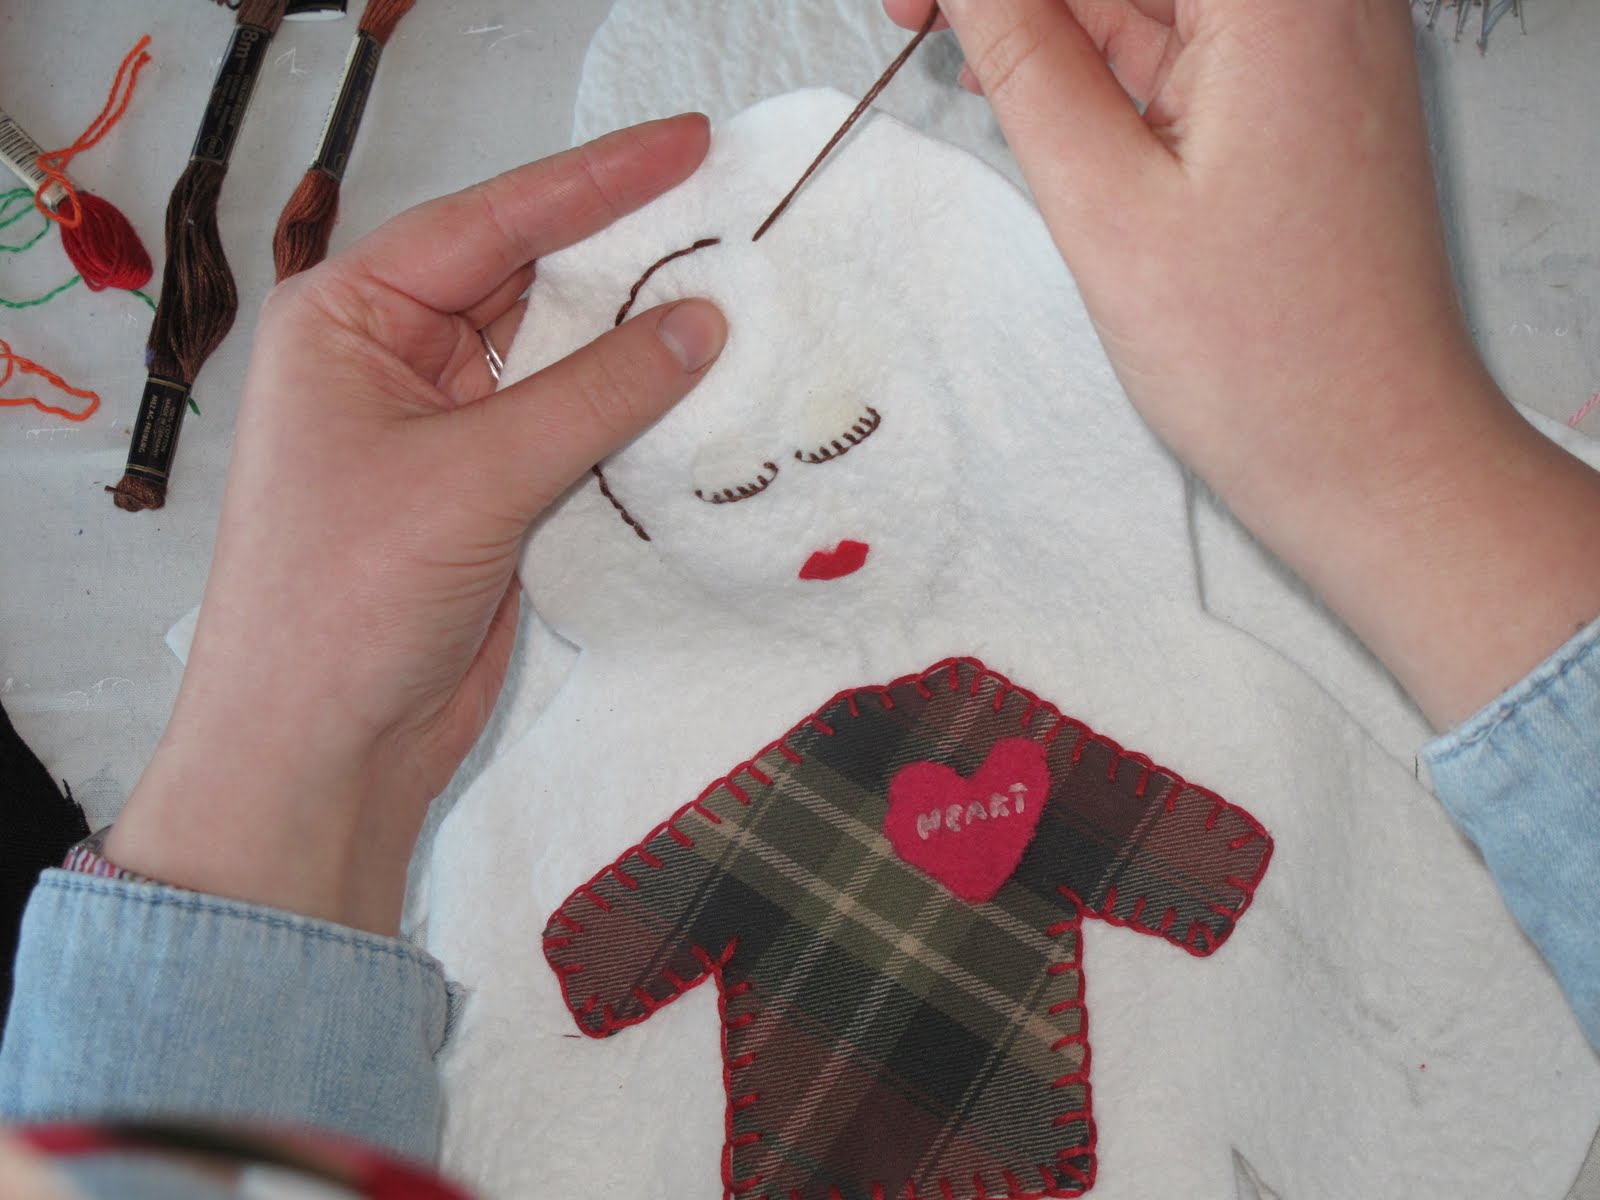 learning embroidery and applique